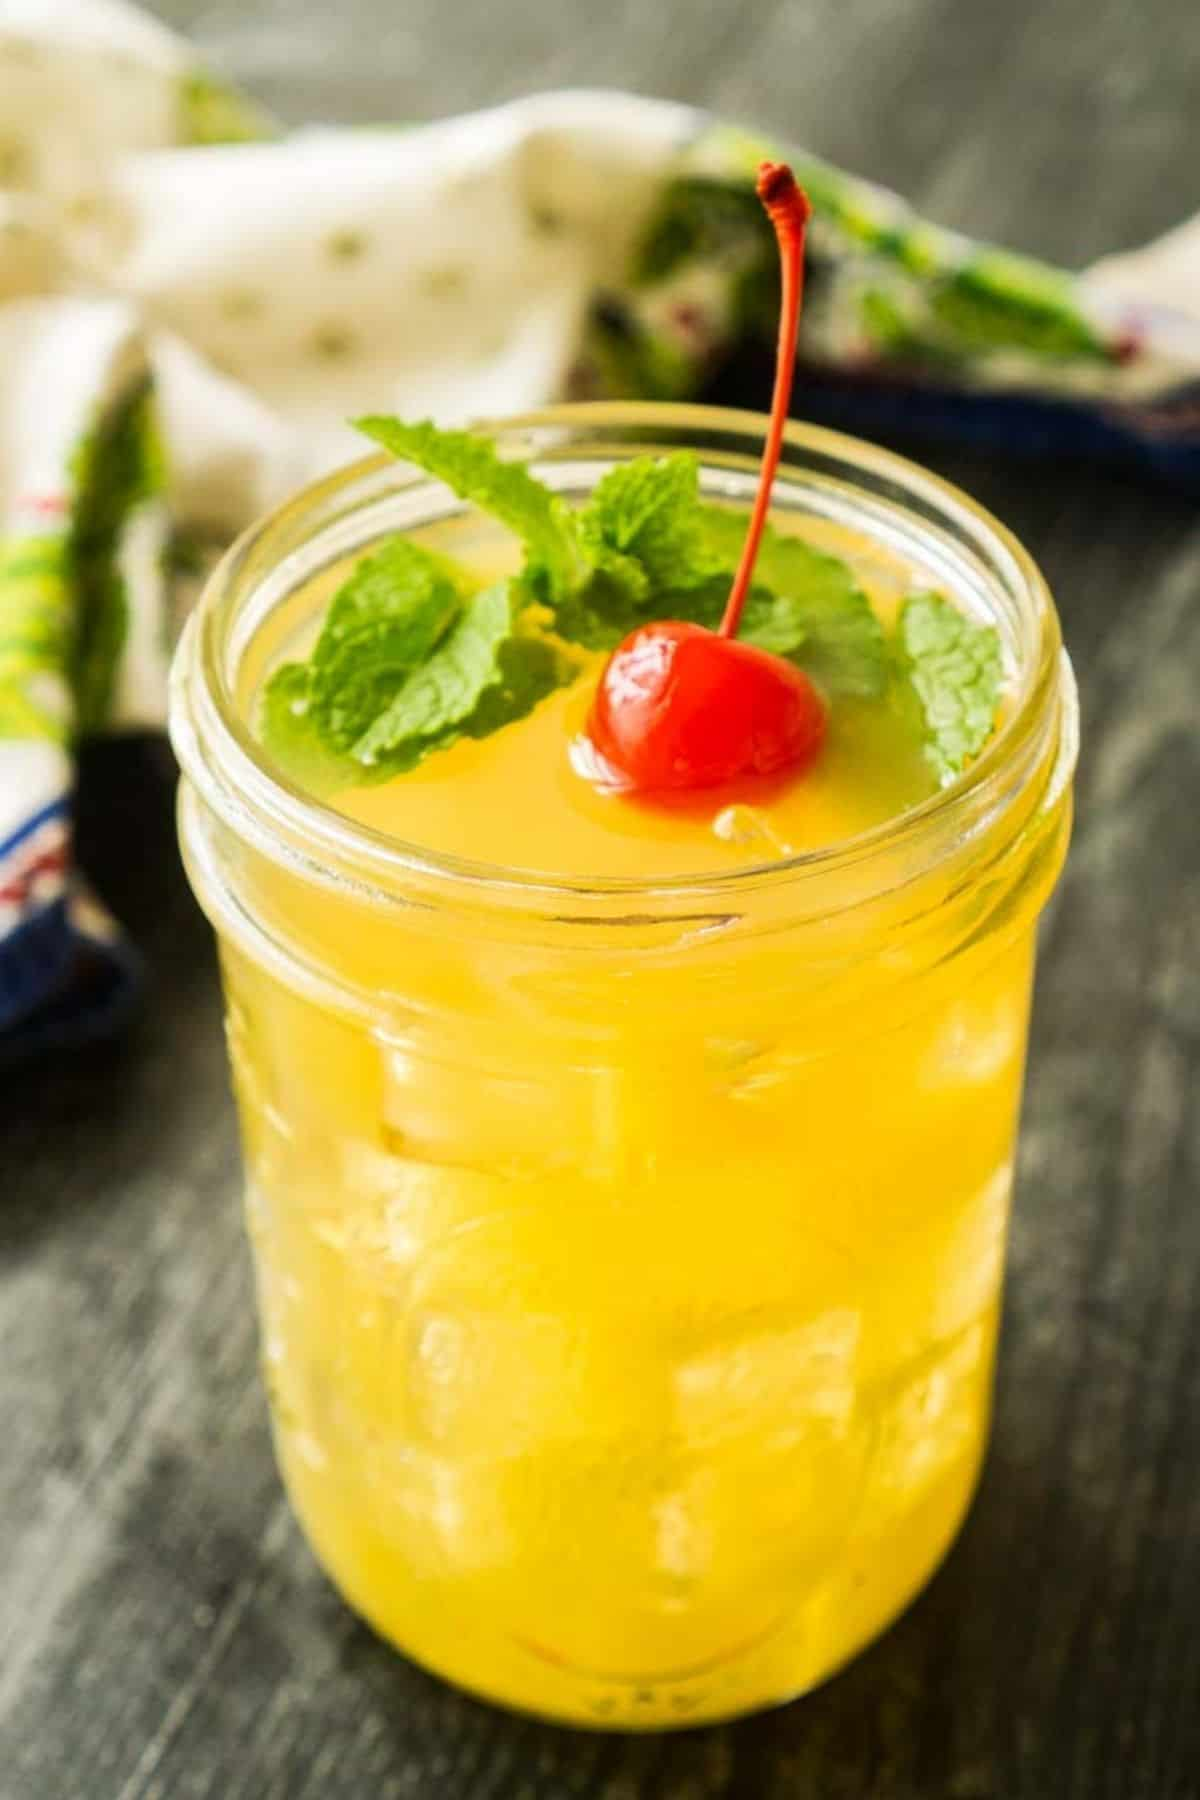 mason jar with pineapple juice cocktail with mint and cherry on top